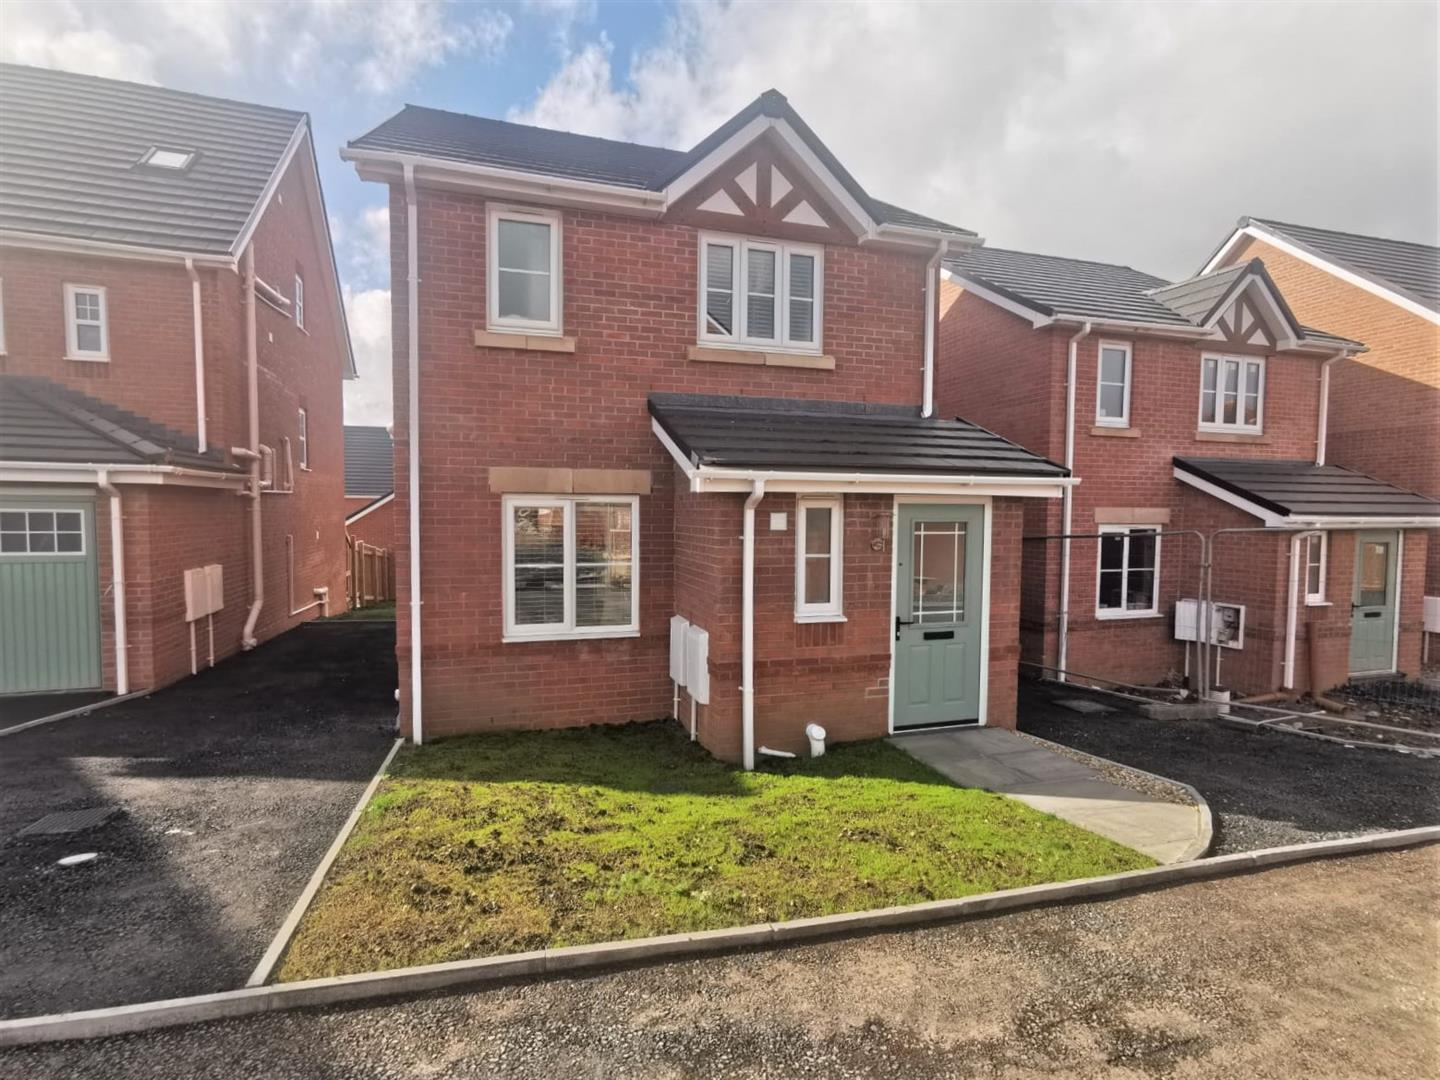 3 Bedrooms, House - Detached, The Bowfell, Aintree Park, Aintree Village, Liverpool